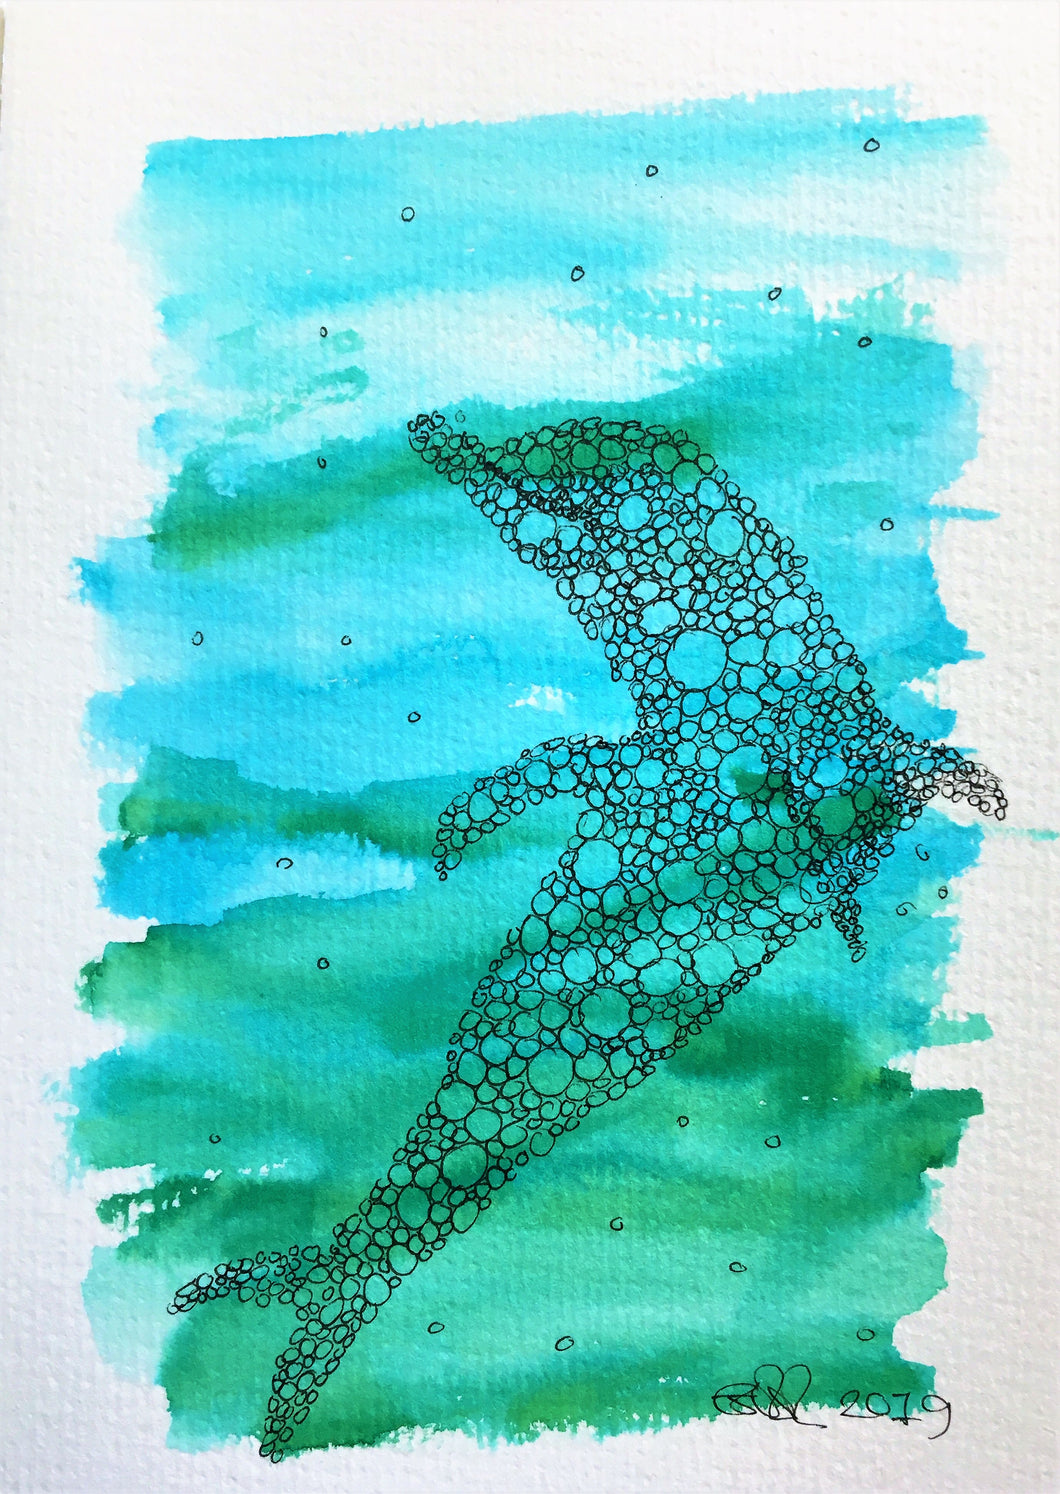 Handpainted Watercolour Greeting Card - Blue/Green with abstract circle dolphin design - eDgE dEsiGn London